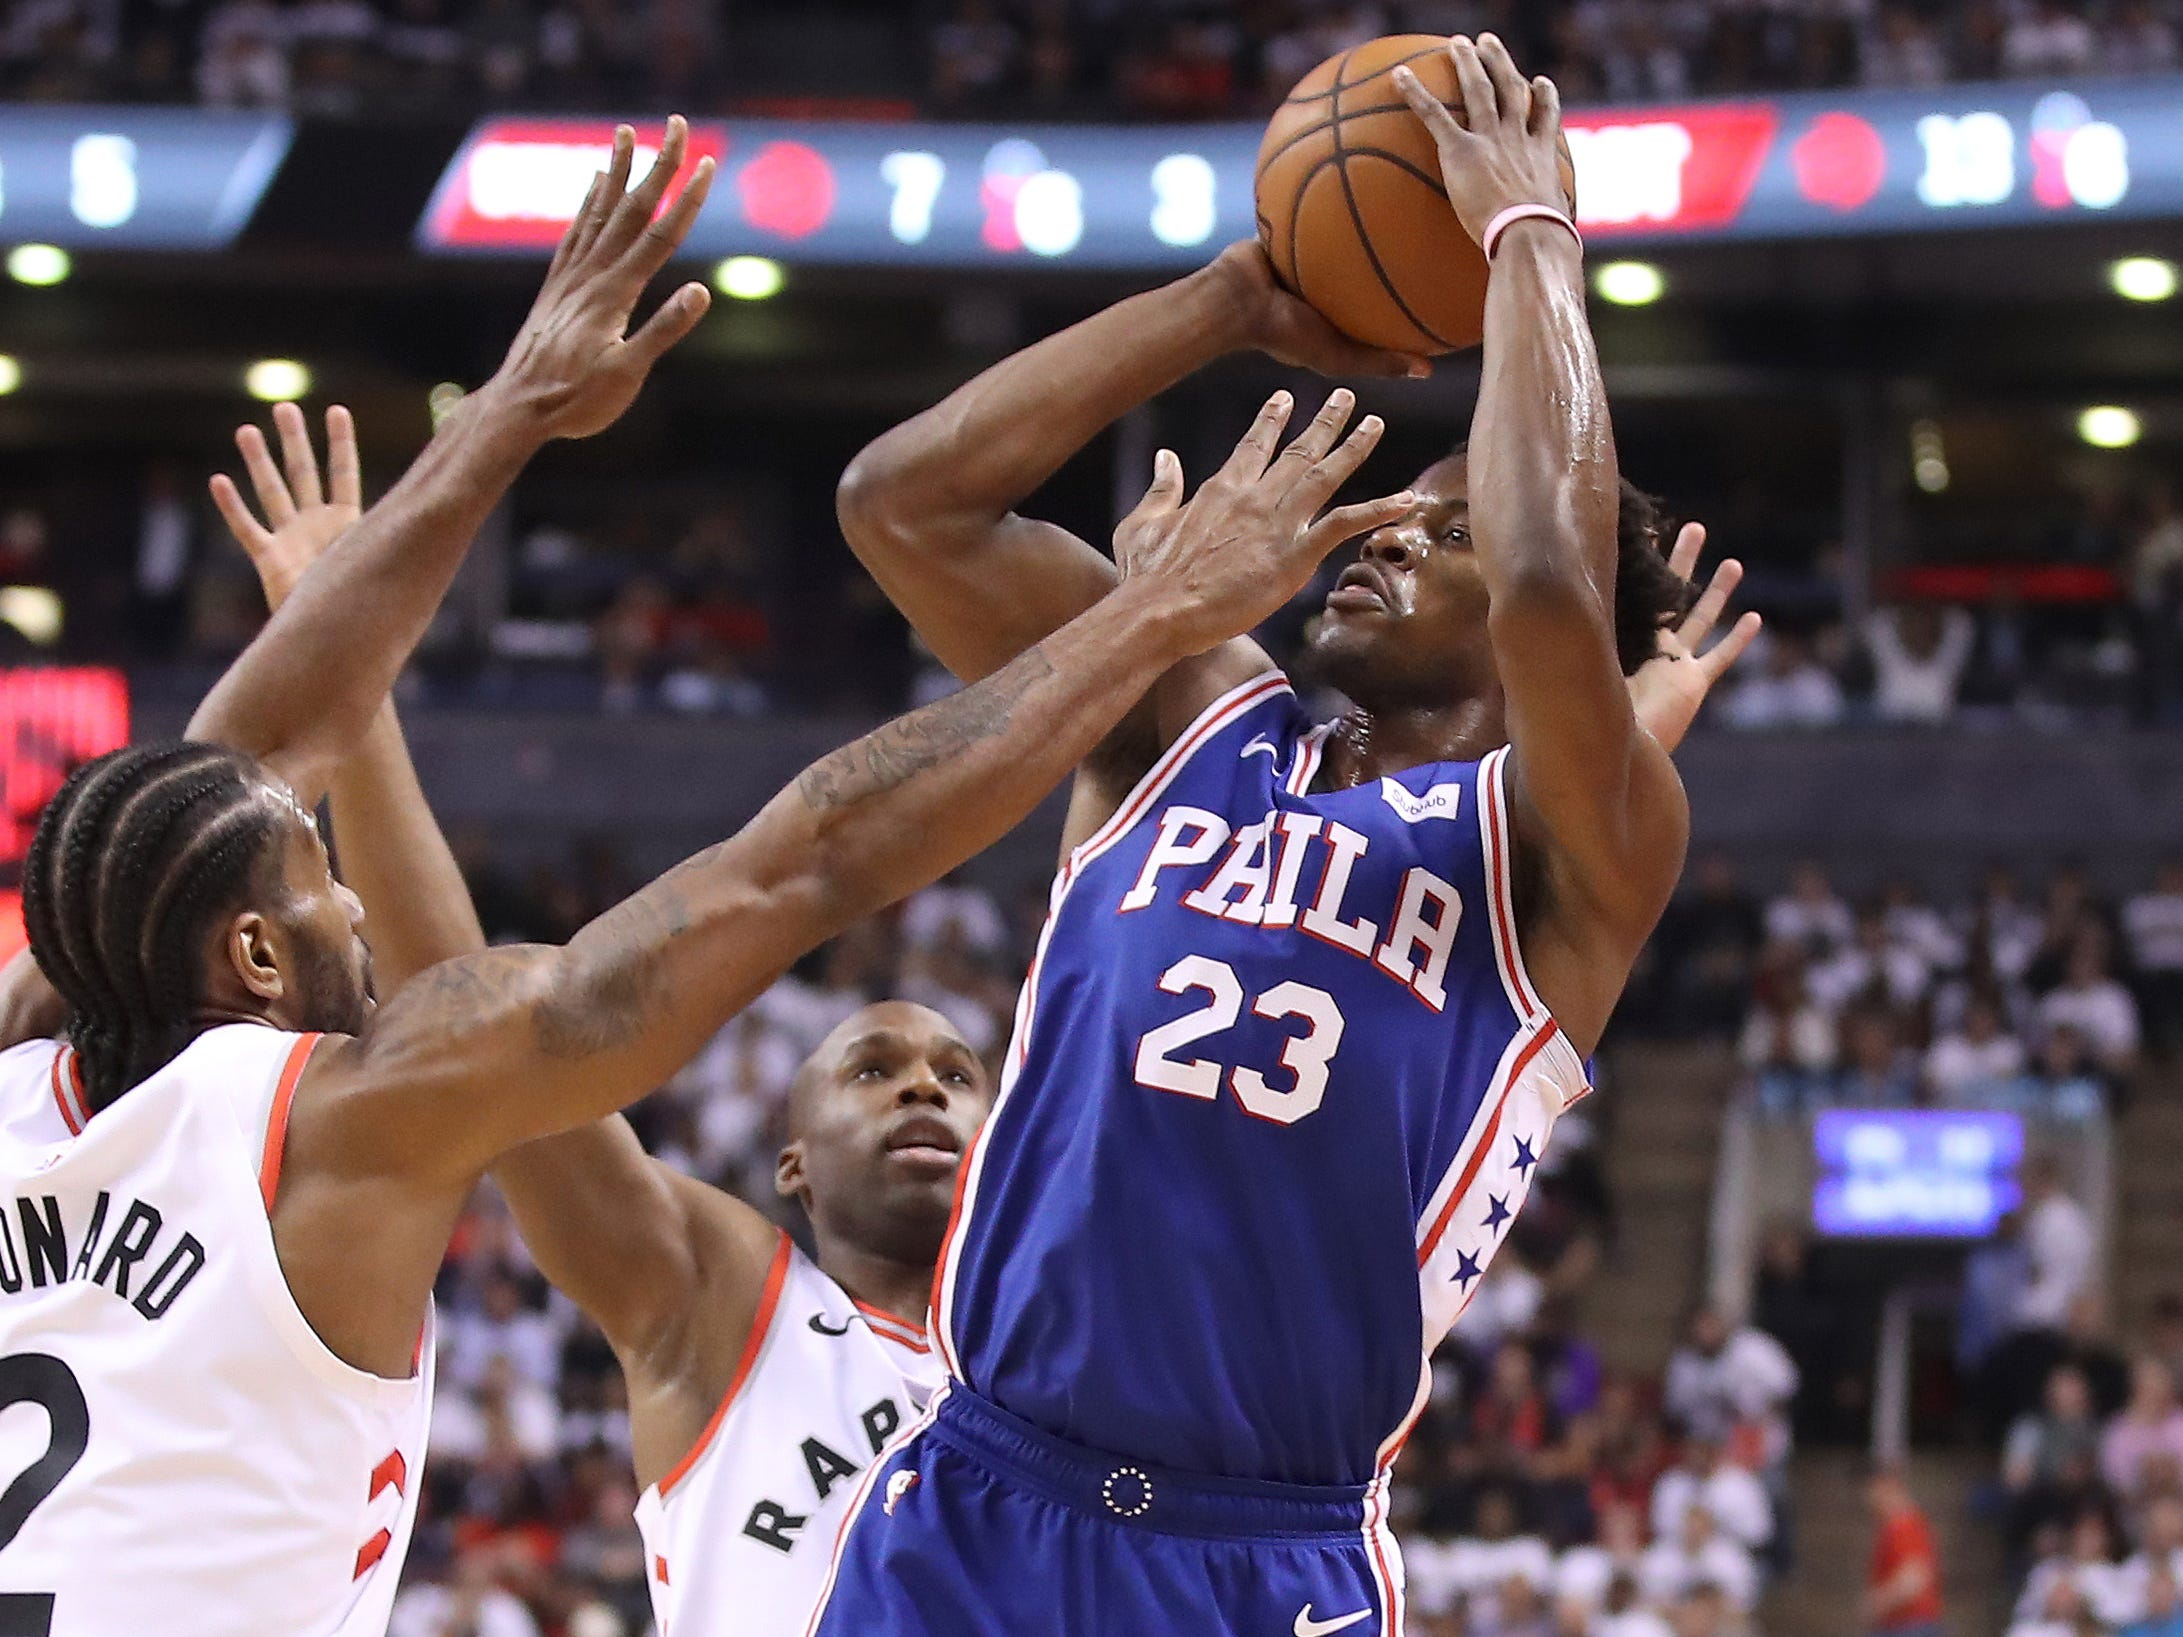 April 29: Sixers guard Jimmy Butler (23) takes the tough shot over Raptors defender Kawhi Leonard (2) during Game 2 in Toronto.